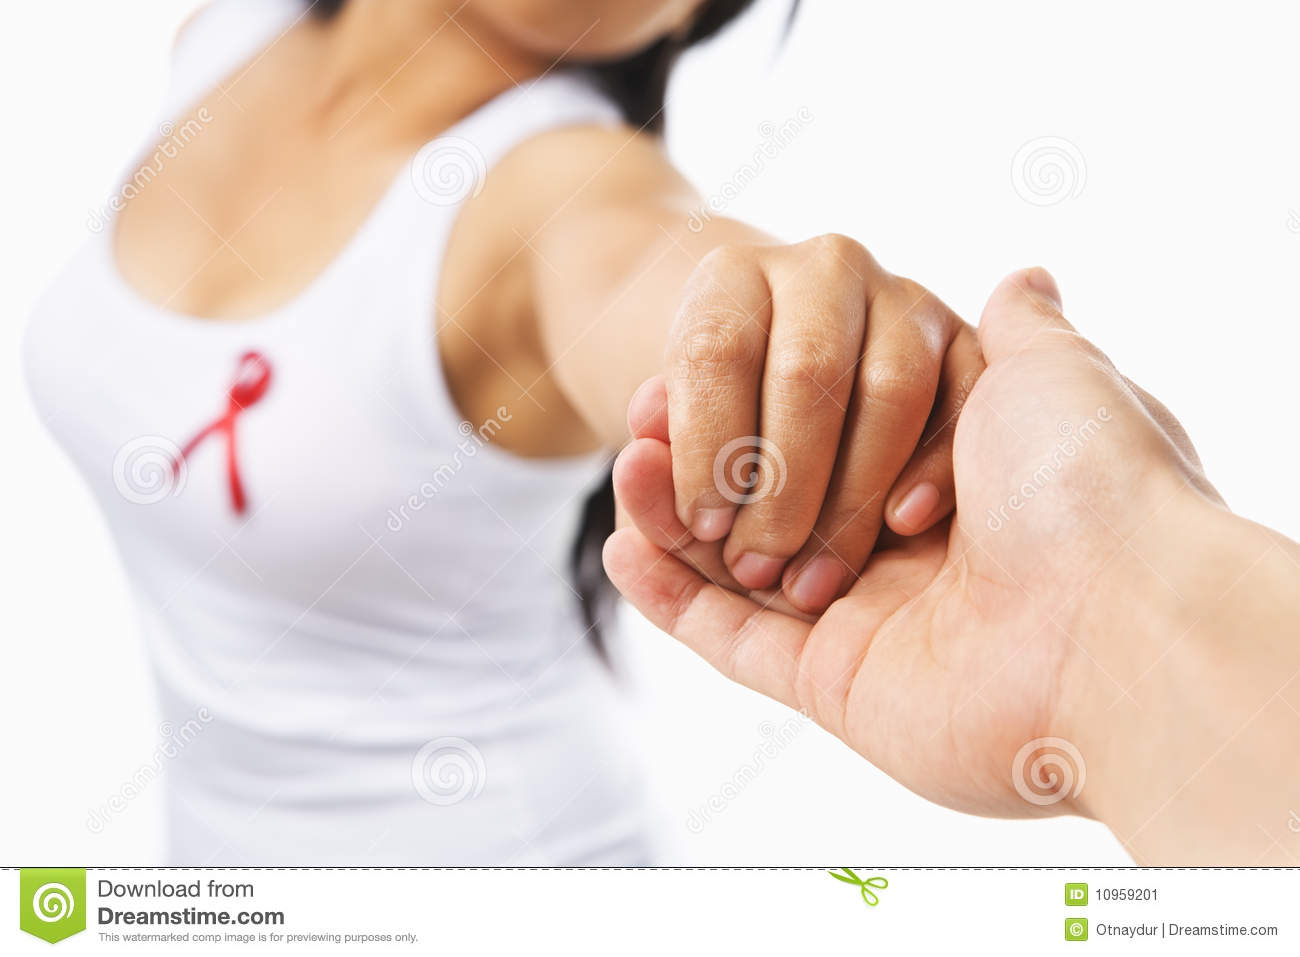 Woman holding hand to support AIDS cause